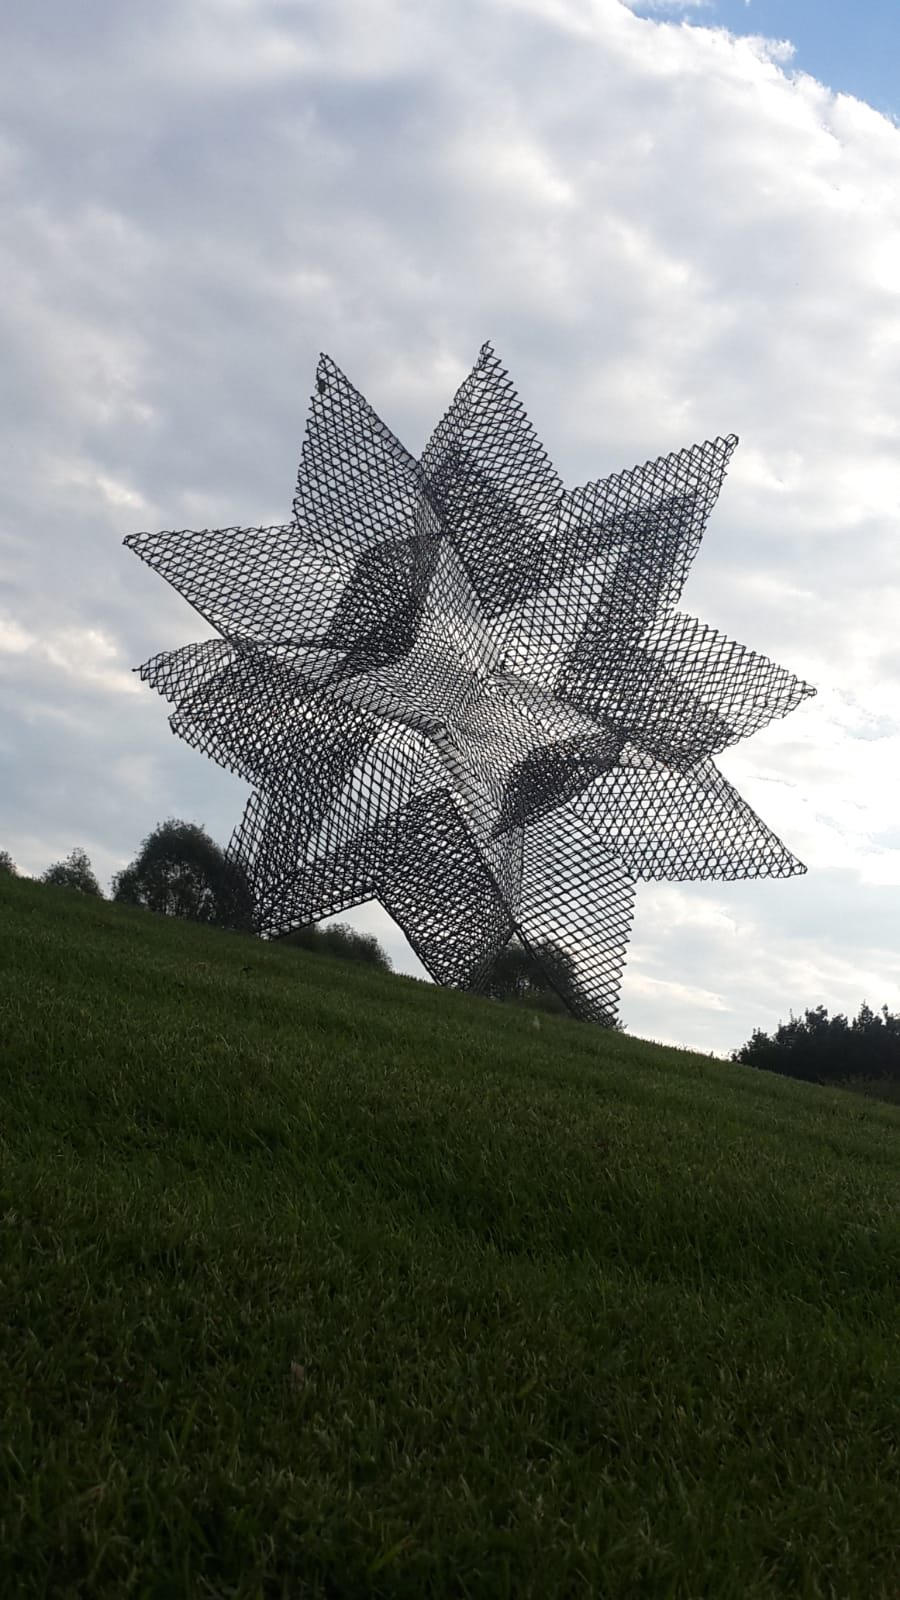 Gordon Froud, Large polyhedron, 2017